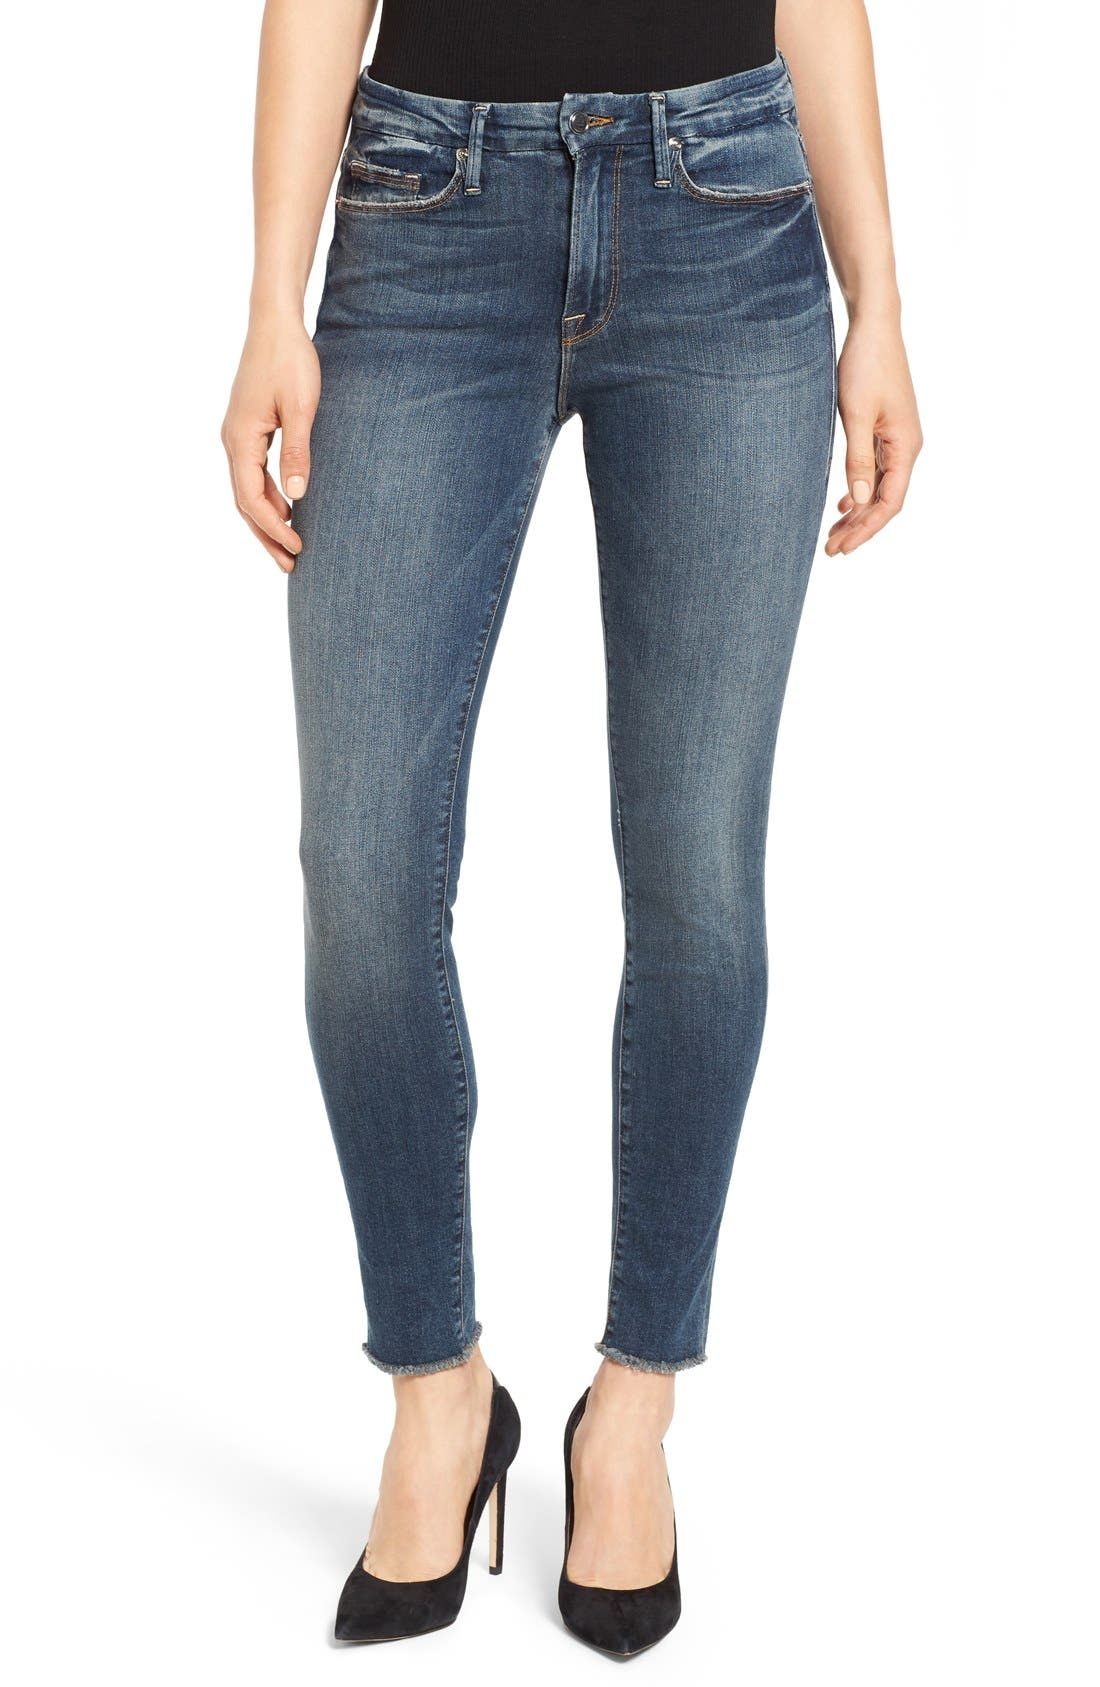 Alternate Image 1 Selected - Good American Good Legs High Rise Skinny Jeans (Blue 005)